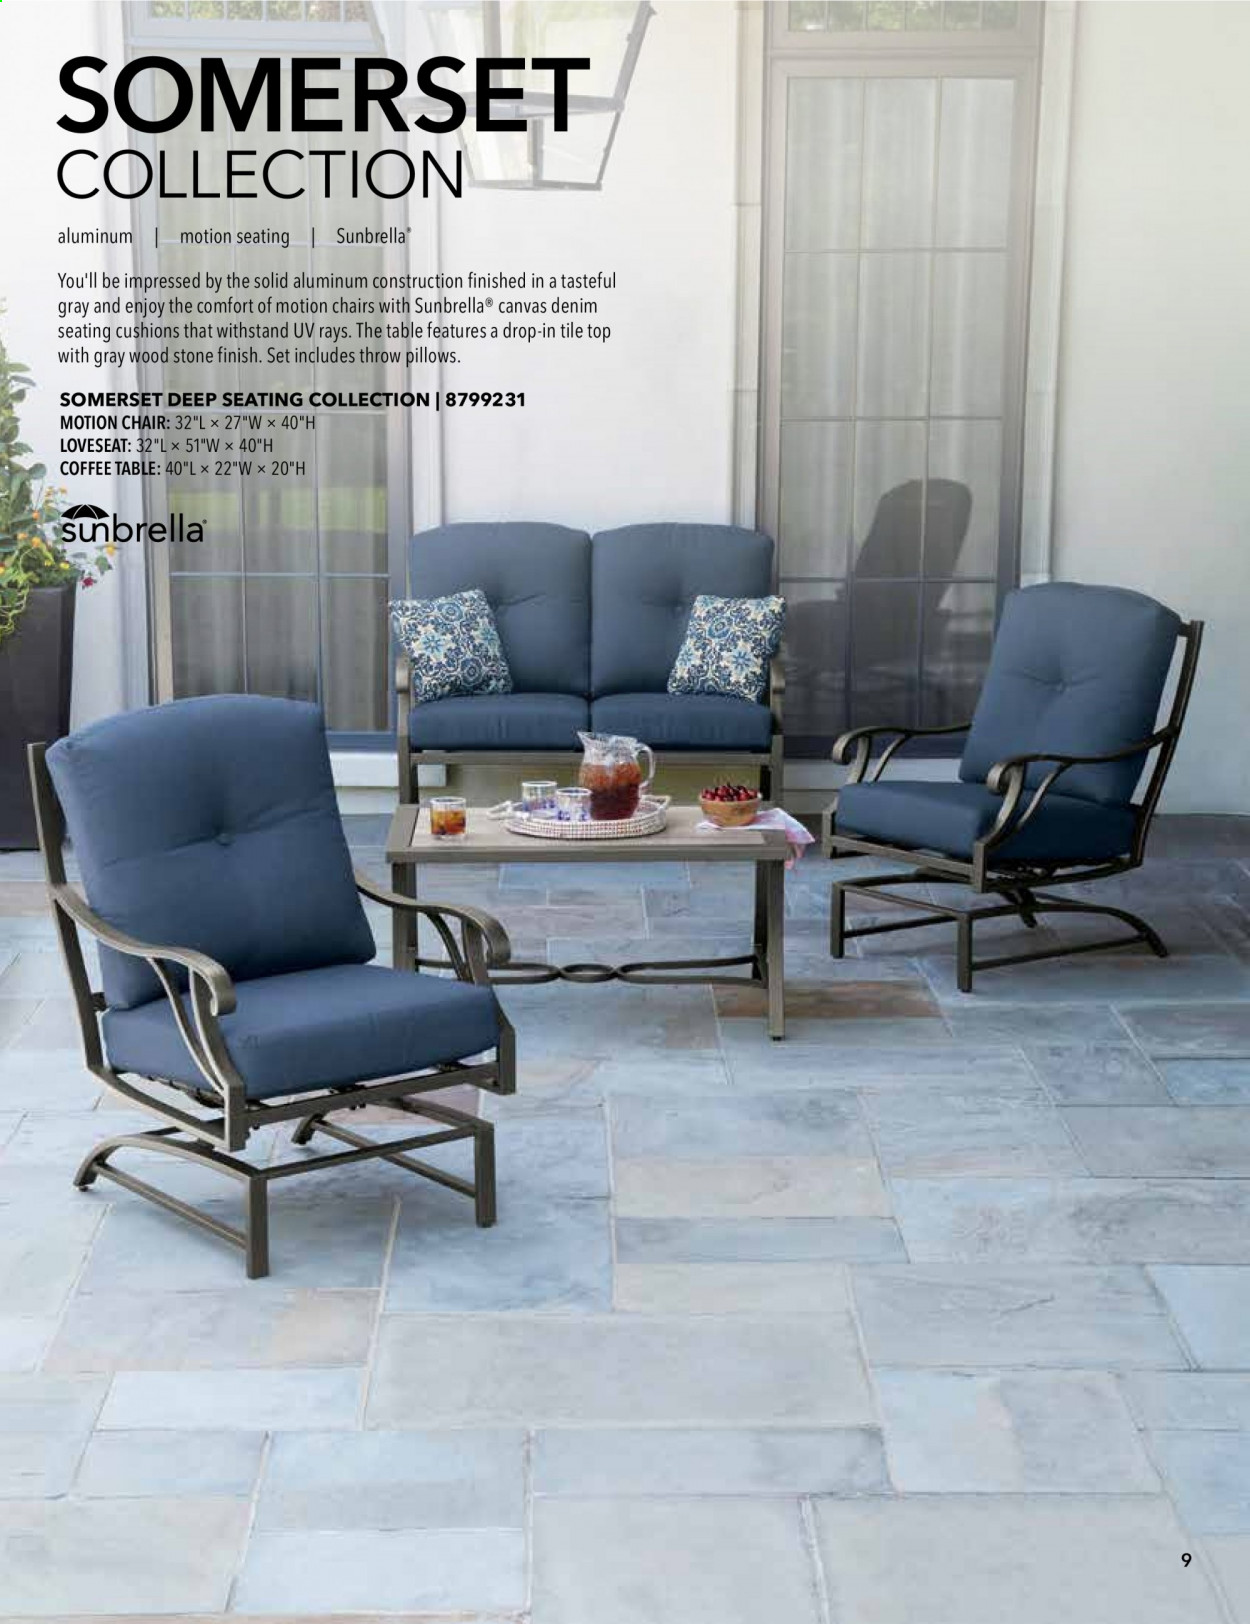 ACE Hardware offer  - 2.9.2020 - 31.12.2020 - Sales products - coffee table, corner chair, glass, loveseat, chair, jeans, pillow, ottoman. Page 9.